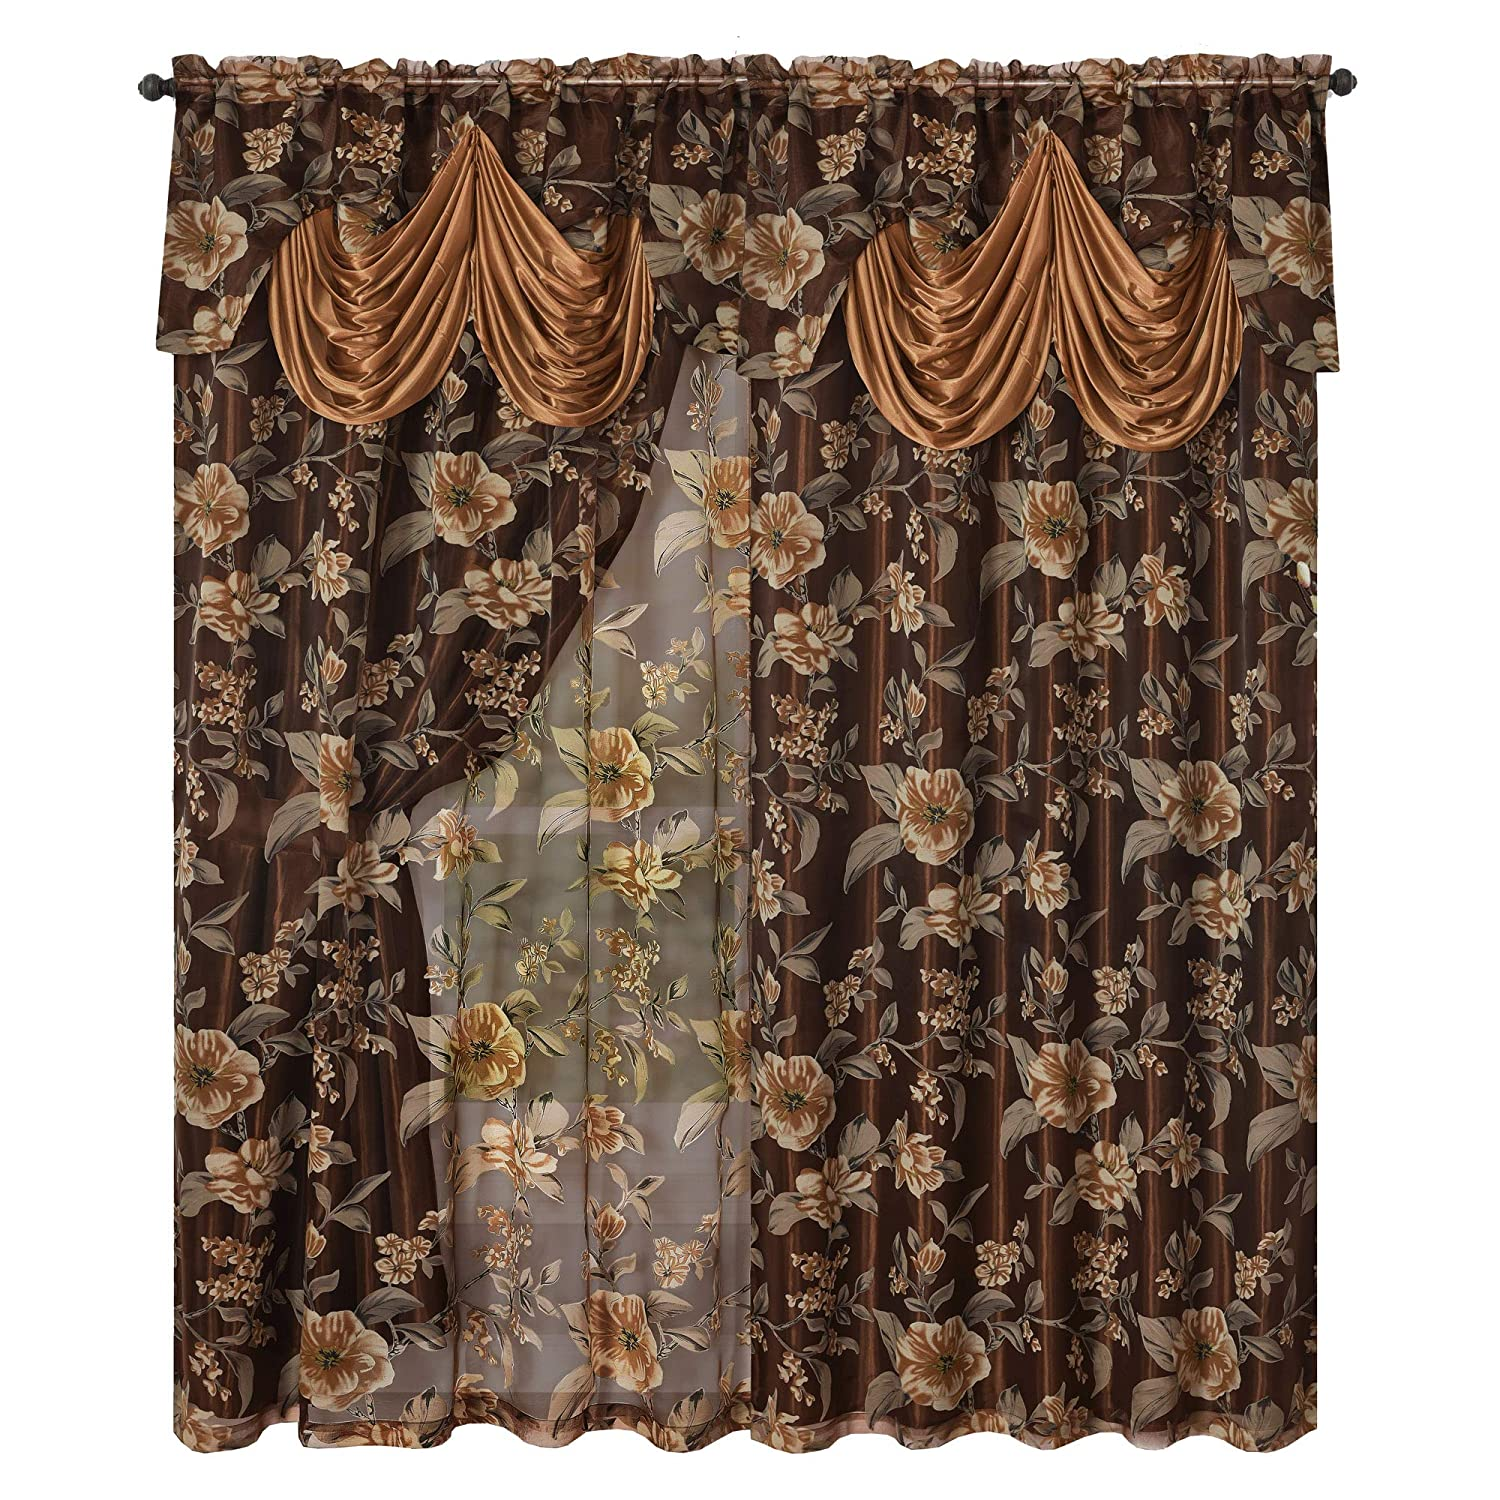 GOHD Golden Ocean Home Decor Roman Romance. Burnt-Out Printed Organza Window Curtain Panel Drape with Attached Fancy Valance and Taffeta Backing (Brown, 55 x 84 inches + Attached Valance x 2pcs)